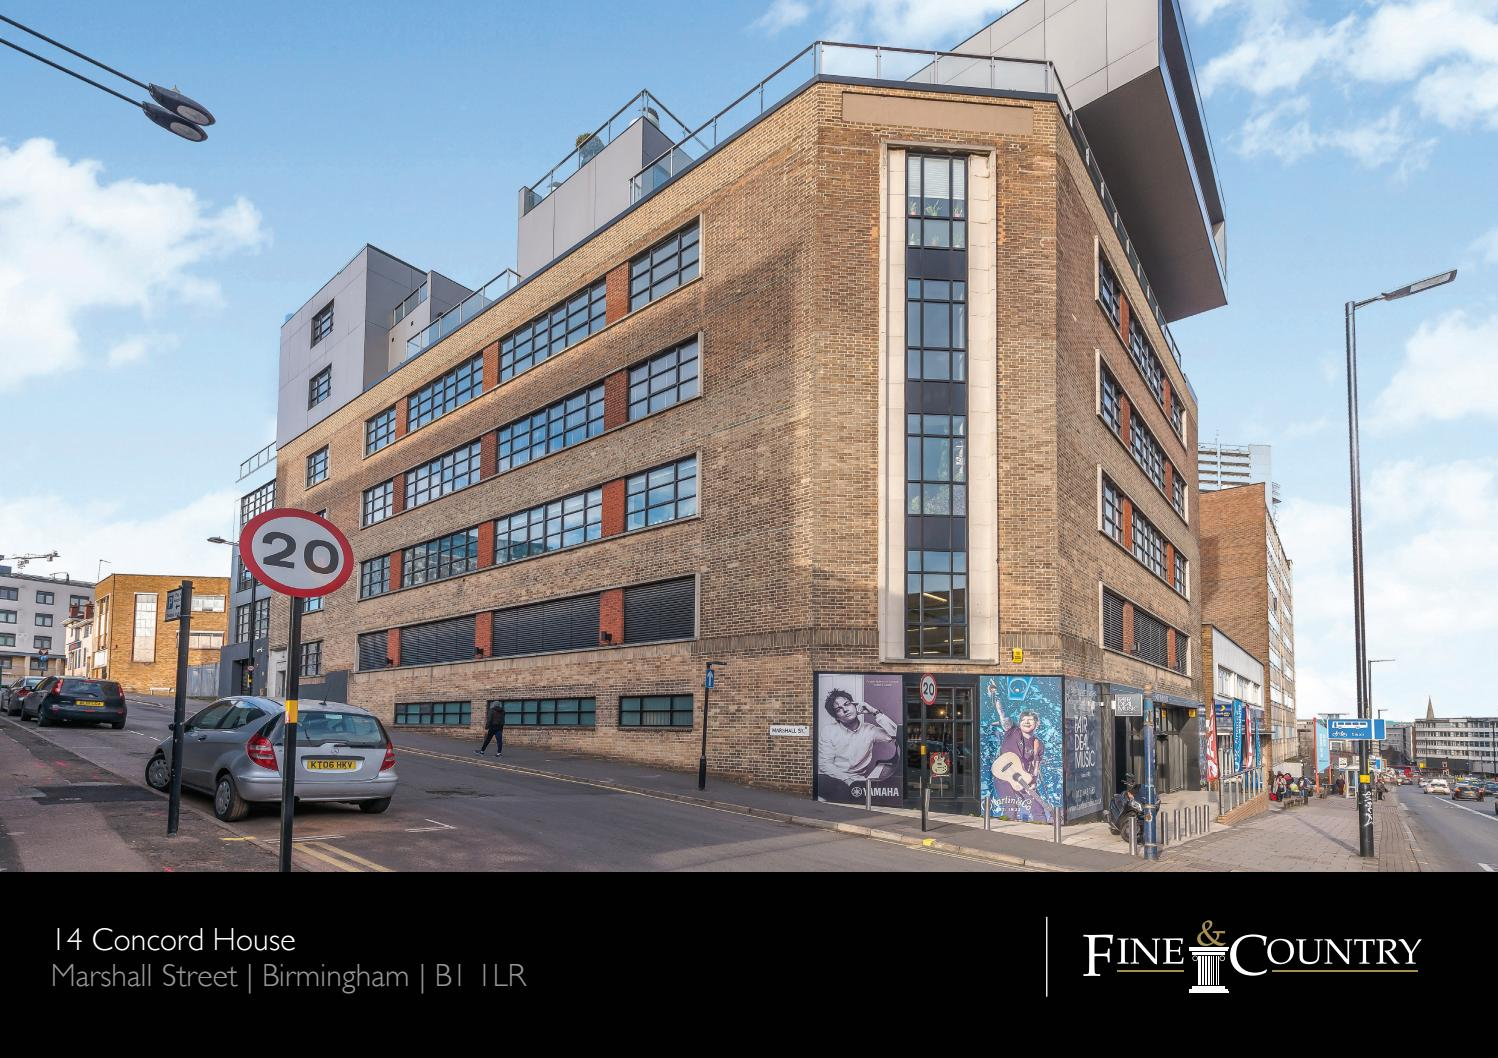 14 Concord House Birmingham by Fine & Country Issuu